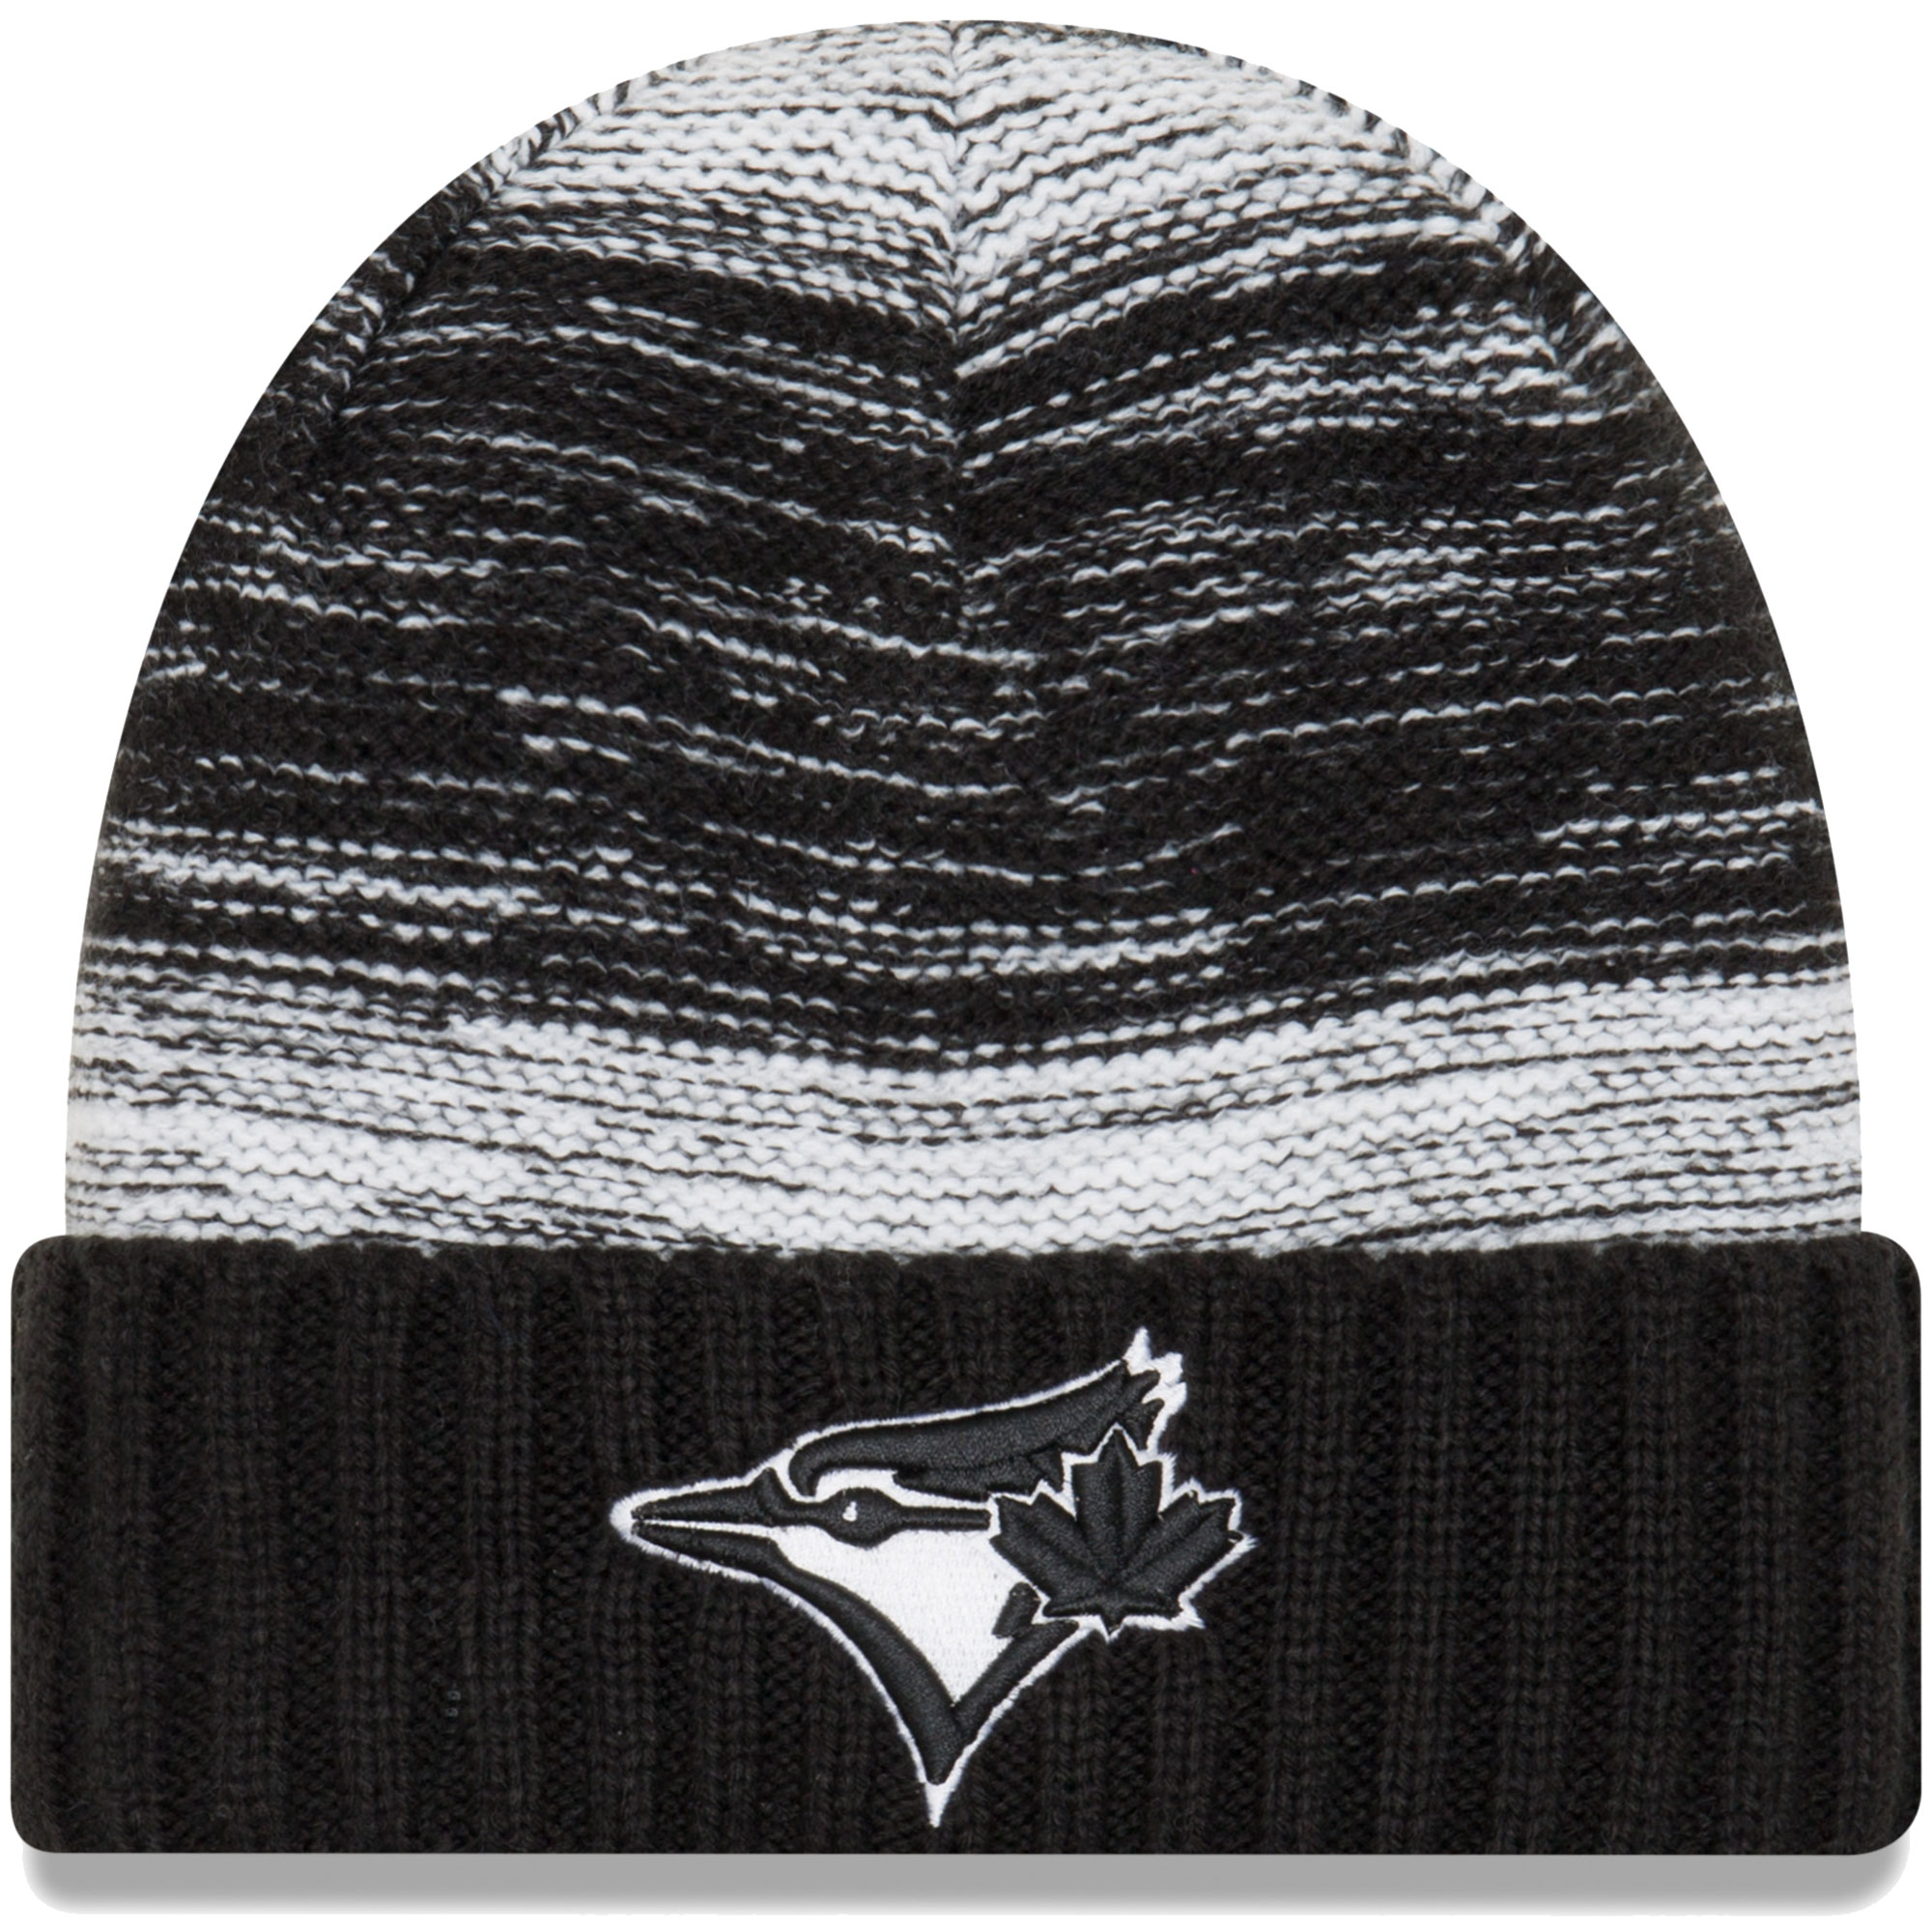 Toronto Blue Jays New Era Team Snug Cuffed Knit Hat - Black/White - OSFA